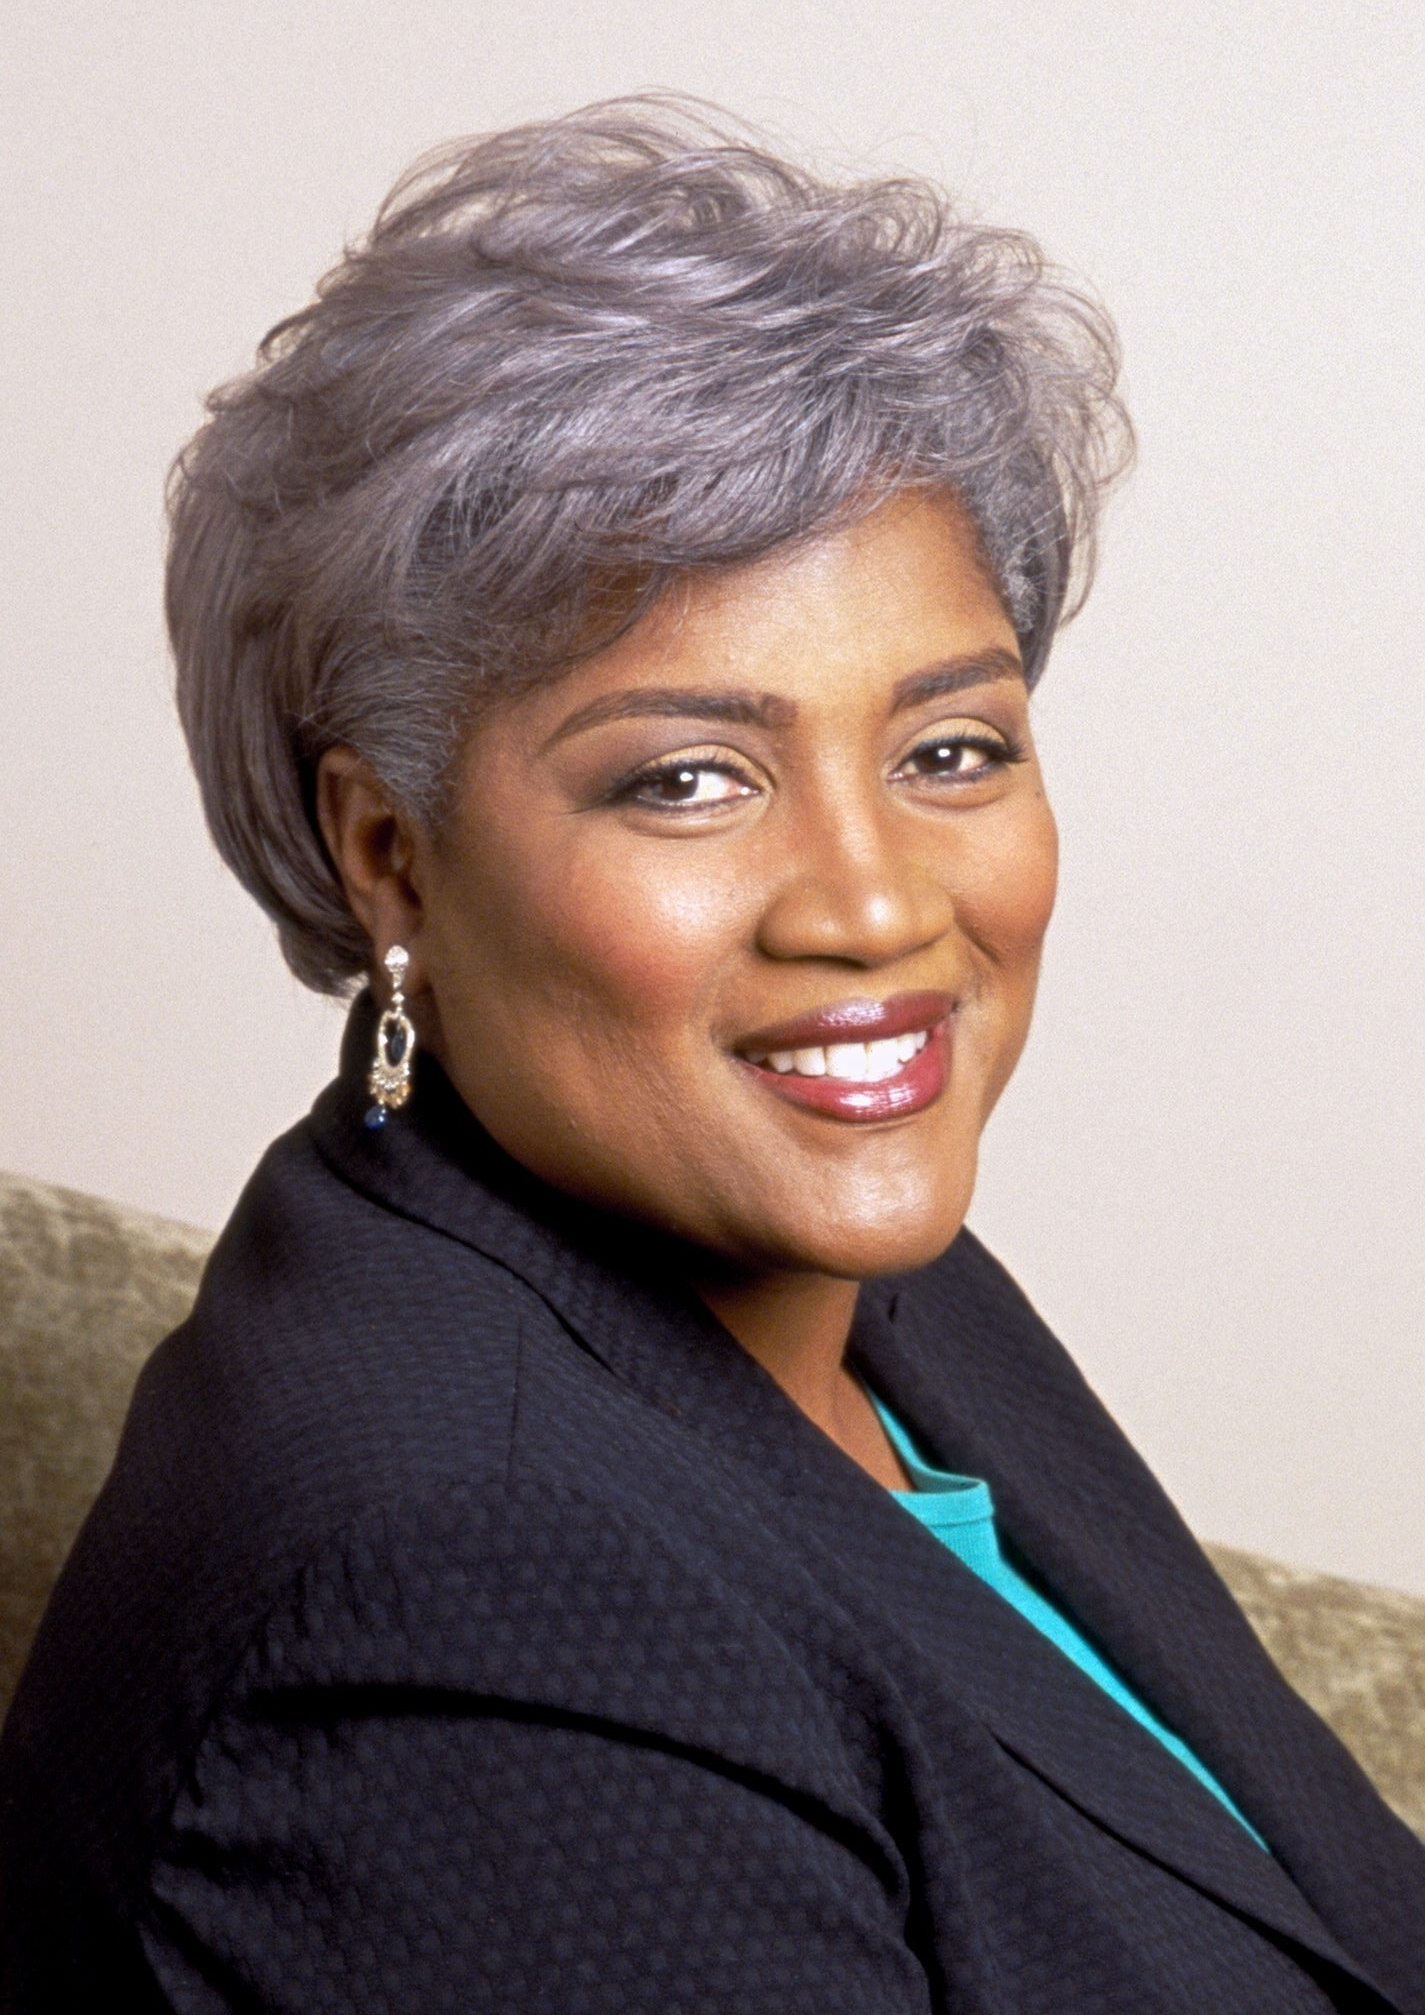 CNN's Donna Brazile Latest Victim in 2016's Misogynistic Media Wars